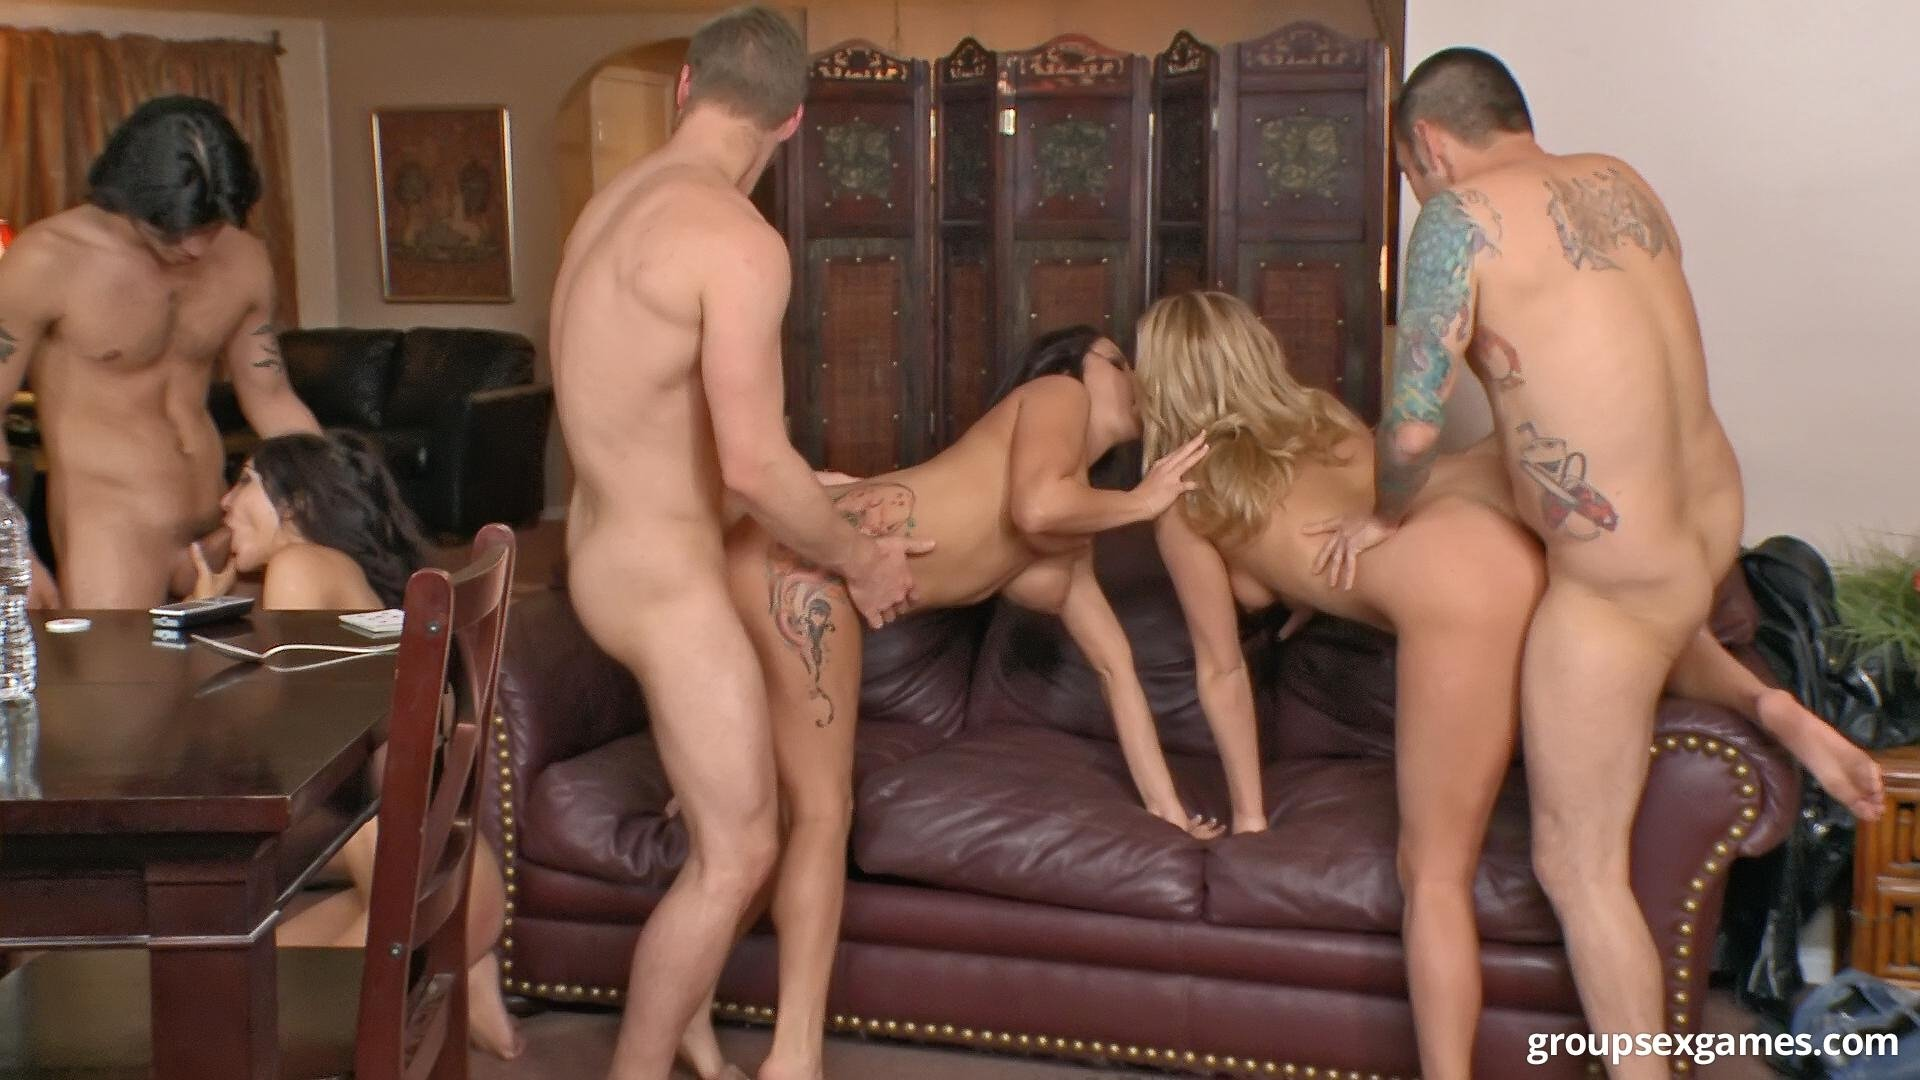 Wife piza man sexi video college